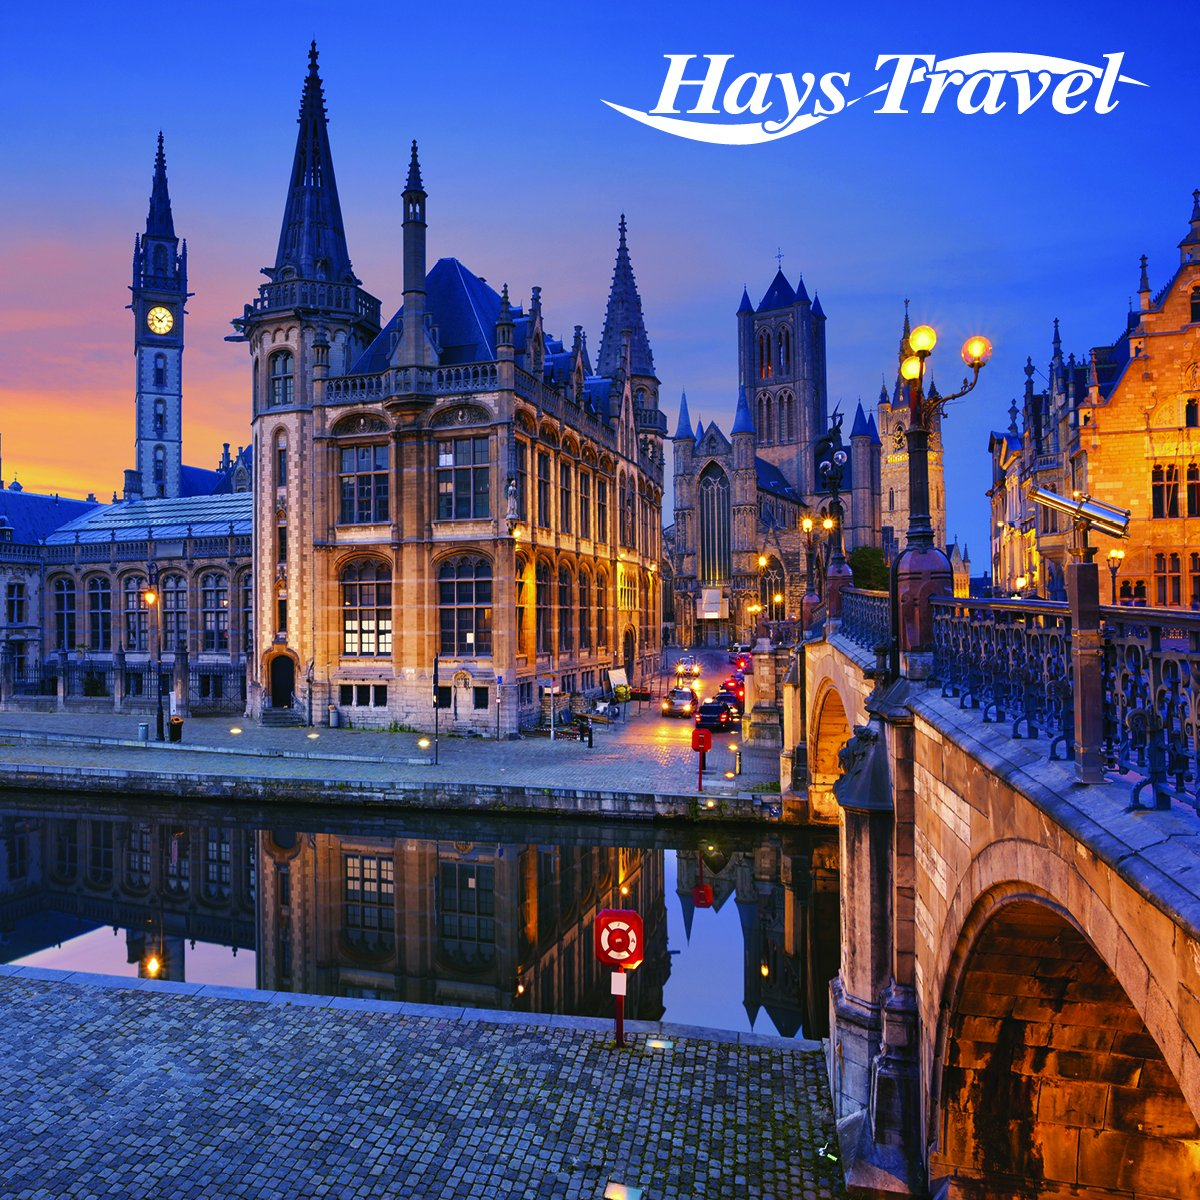 hays travel - photo #18